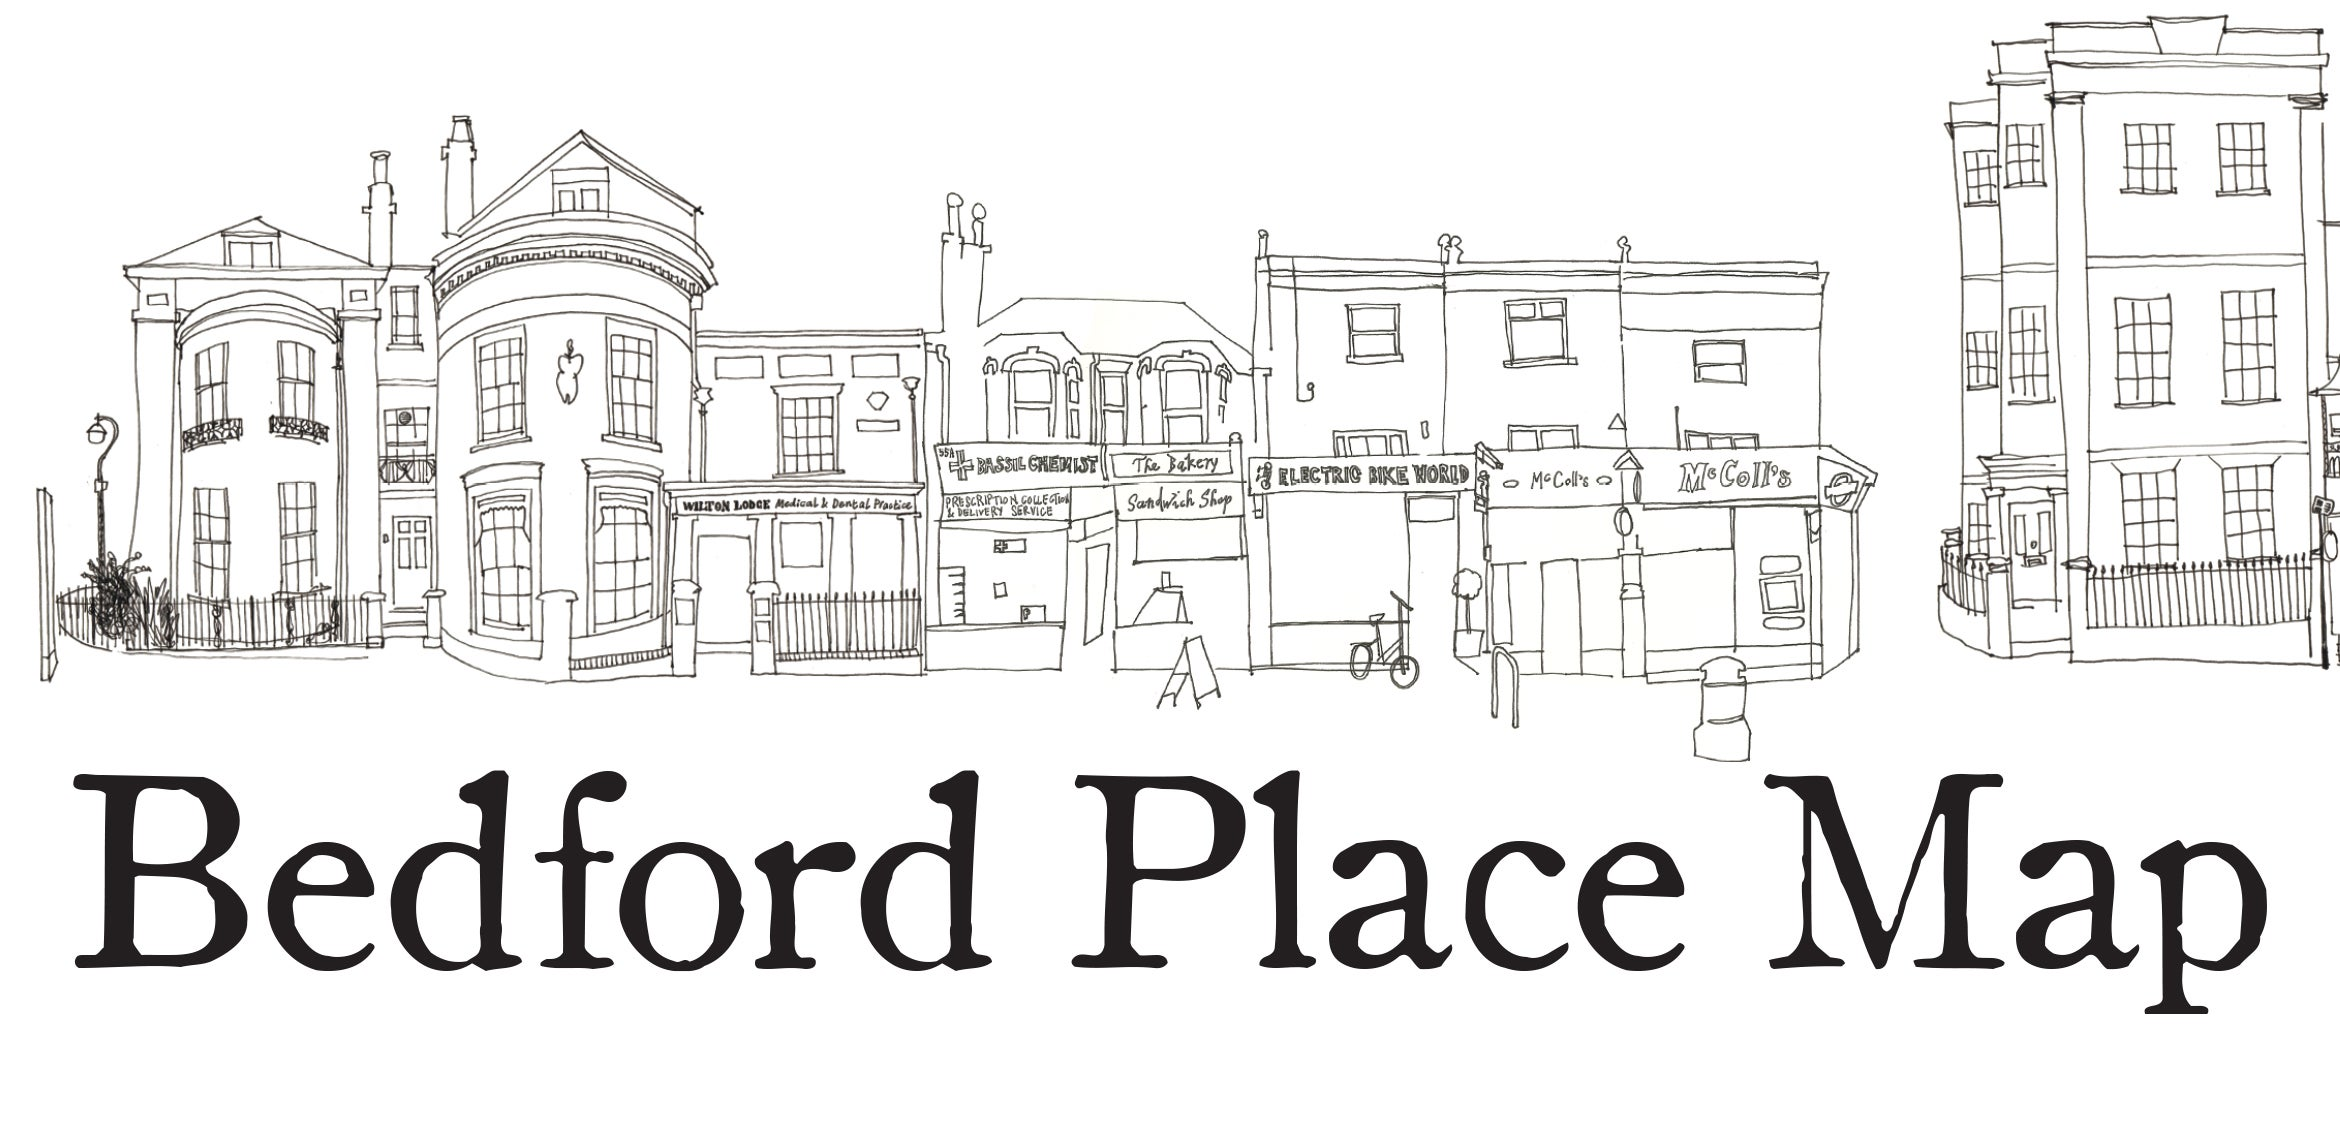 Bedford place map jj fish n chips bengal brasserie for Jj fish and chips